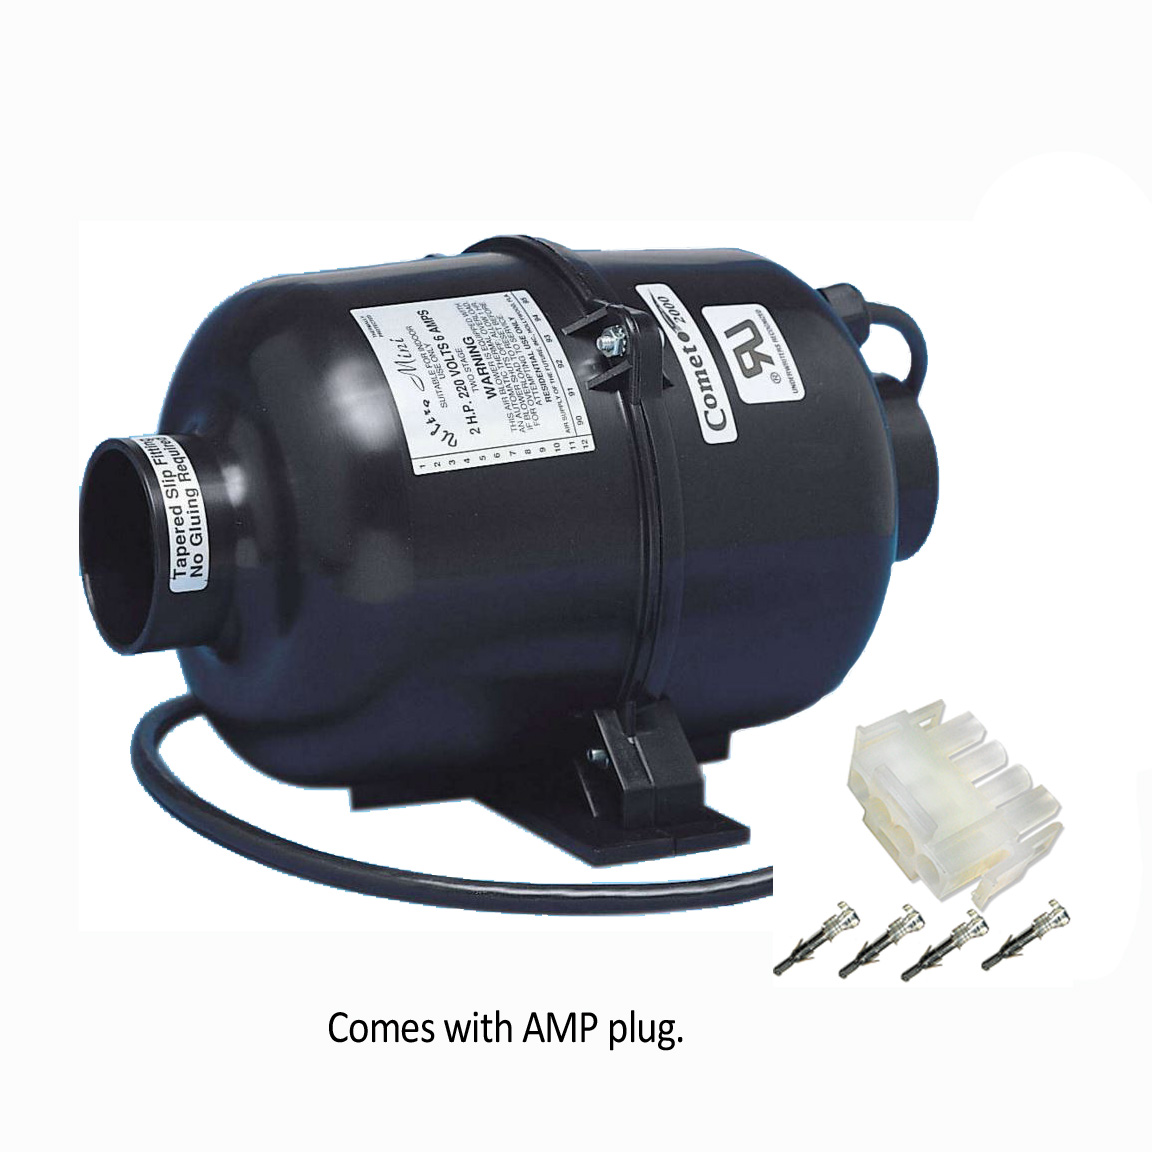 Air Supply Comet 2000 Portable Spa Blower 1HP 120V - 3210120 / 3210131 - Blowers